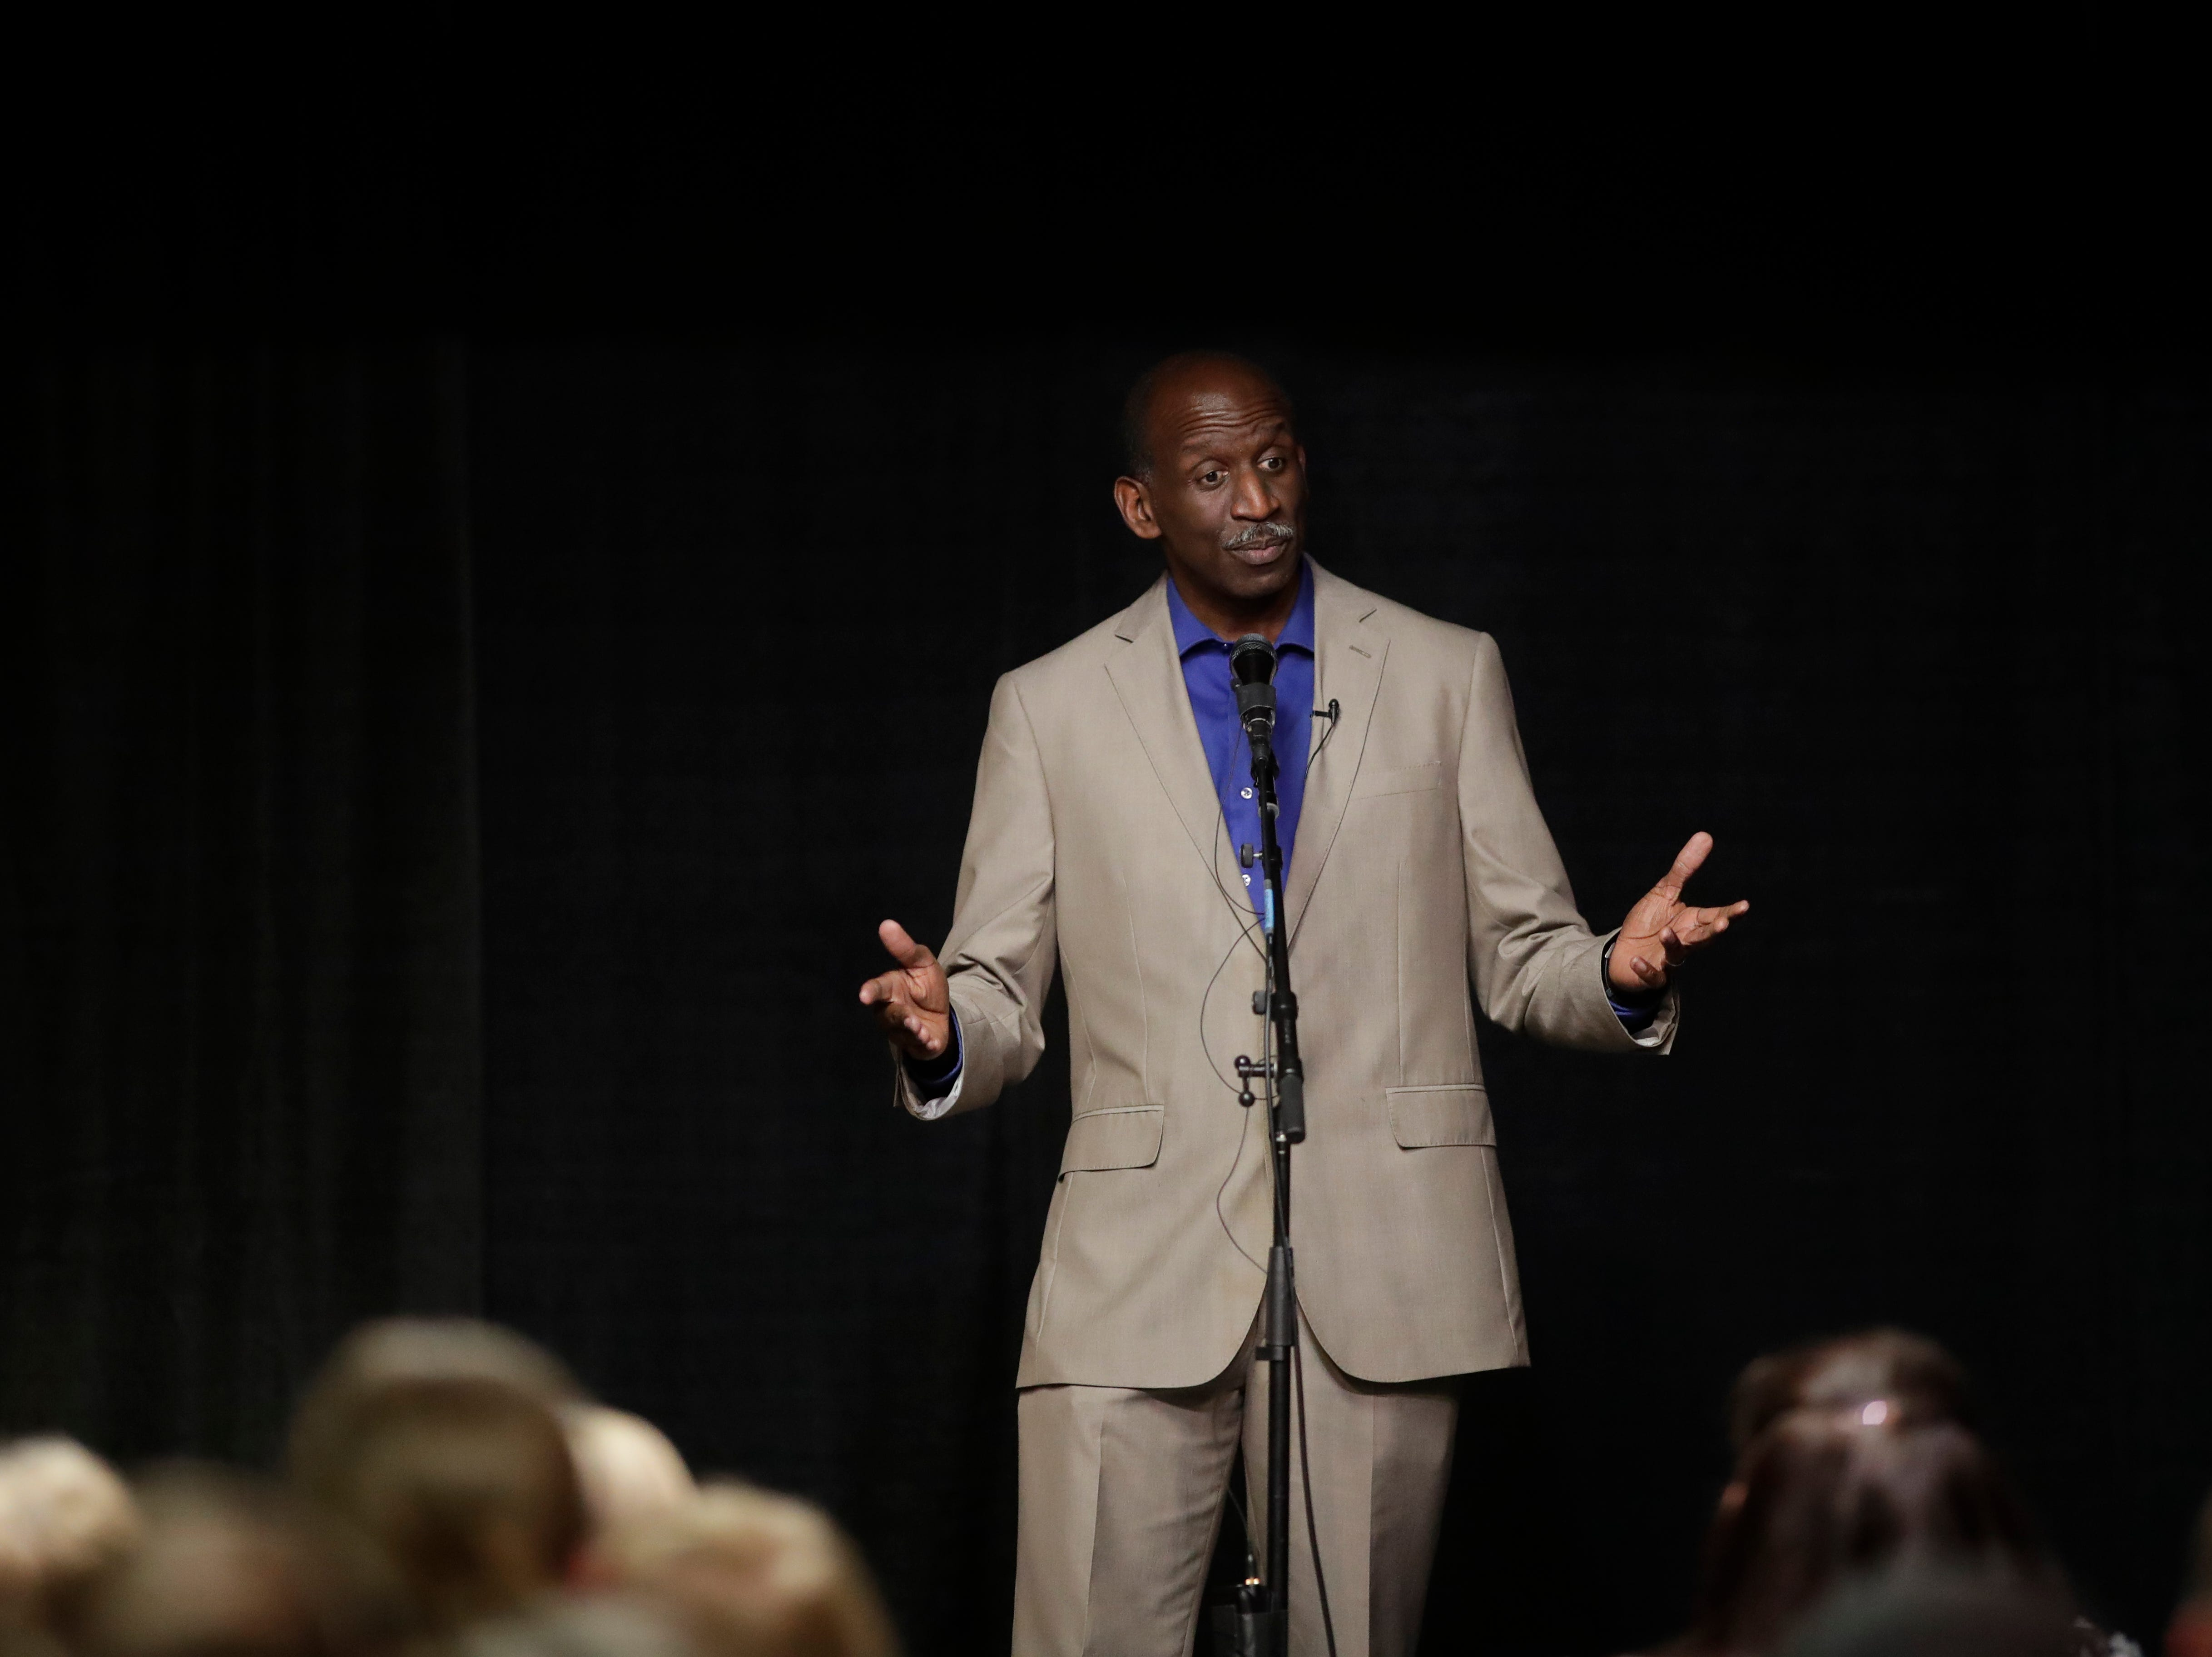 "Kenneth Jones shares his story ""The Corner Store"" during the Storytellers event ""In the Blink of an Eye: Stories of Tragedy, Triumph and Transformation"" at the American Legion Post 13 in Tallahassee Friday, Nov. 30, 2018."